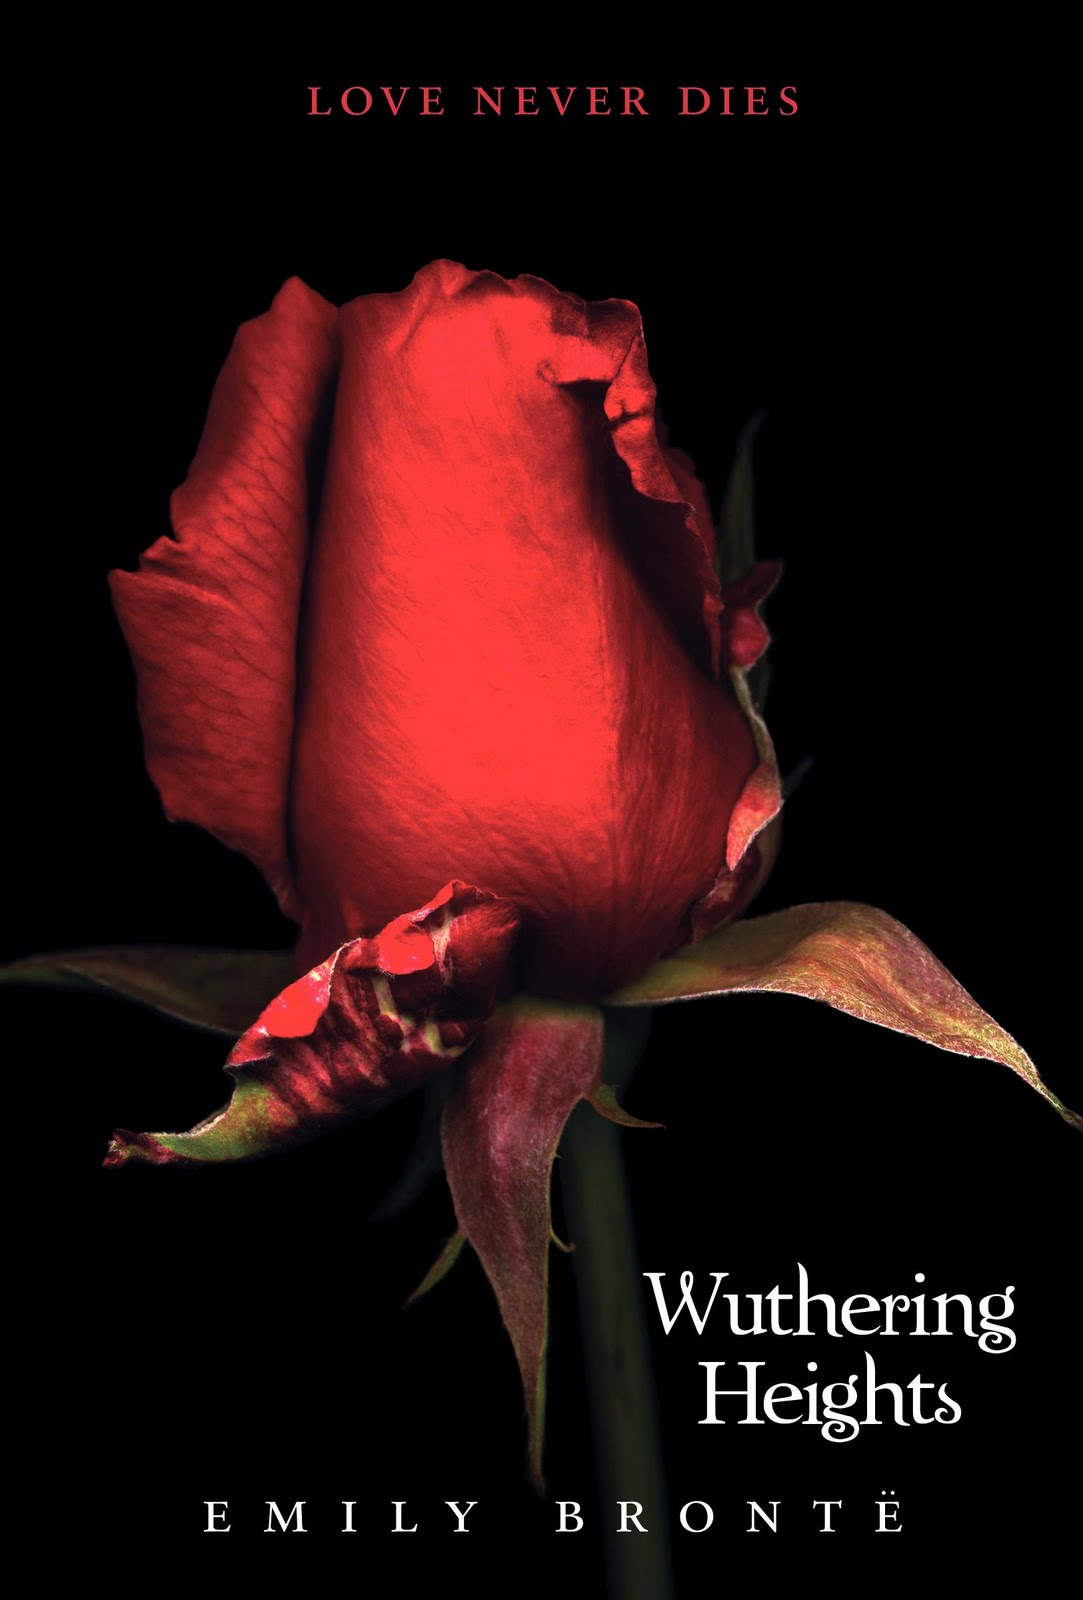 the theme of love in the book the wuthering heights Why wuthering heights shall remain the most passionate love story in literature wuthering heights.